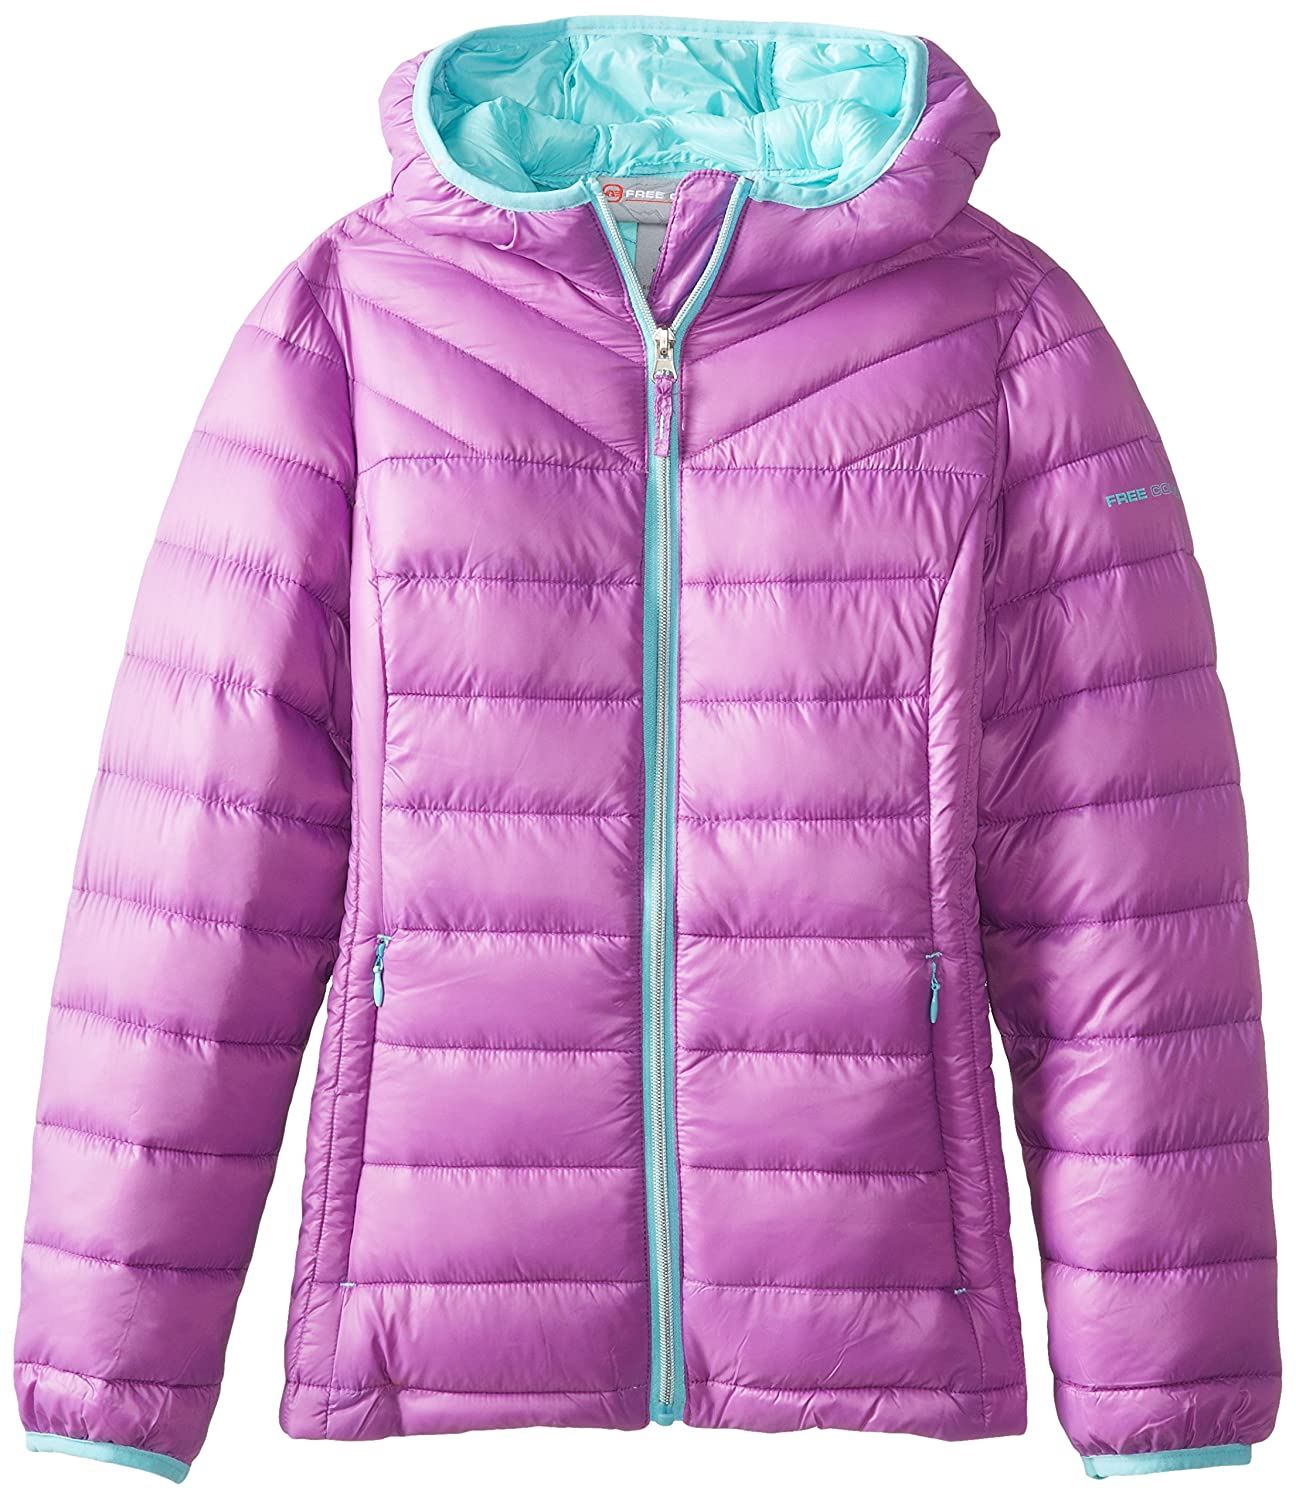 Young girls winter coats-2798